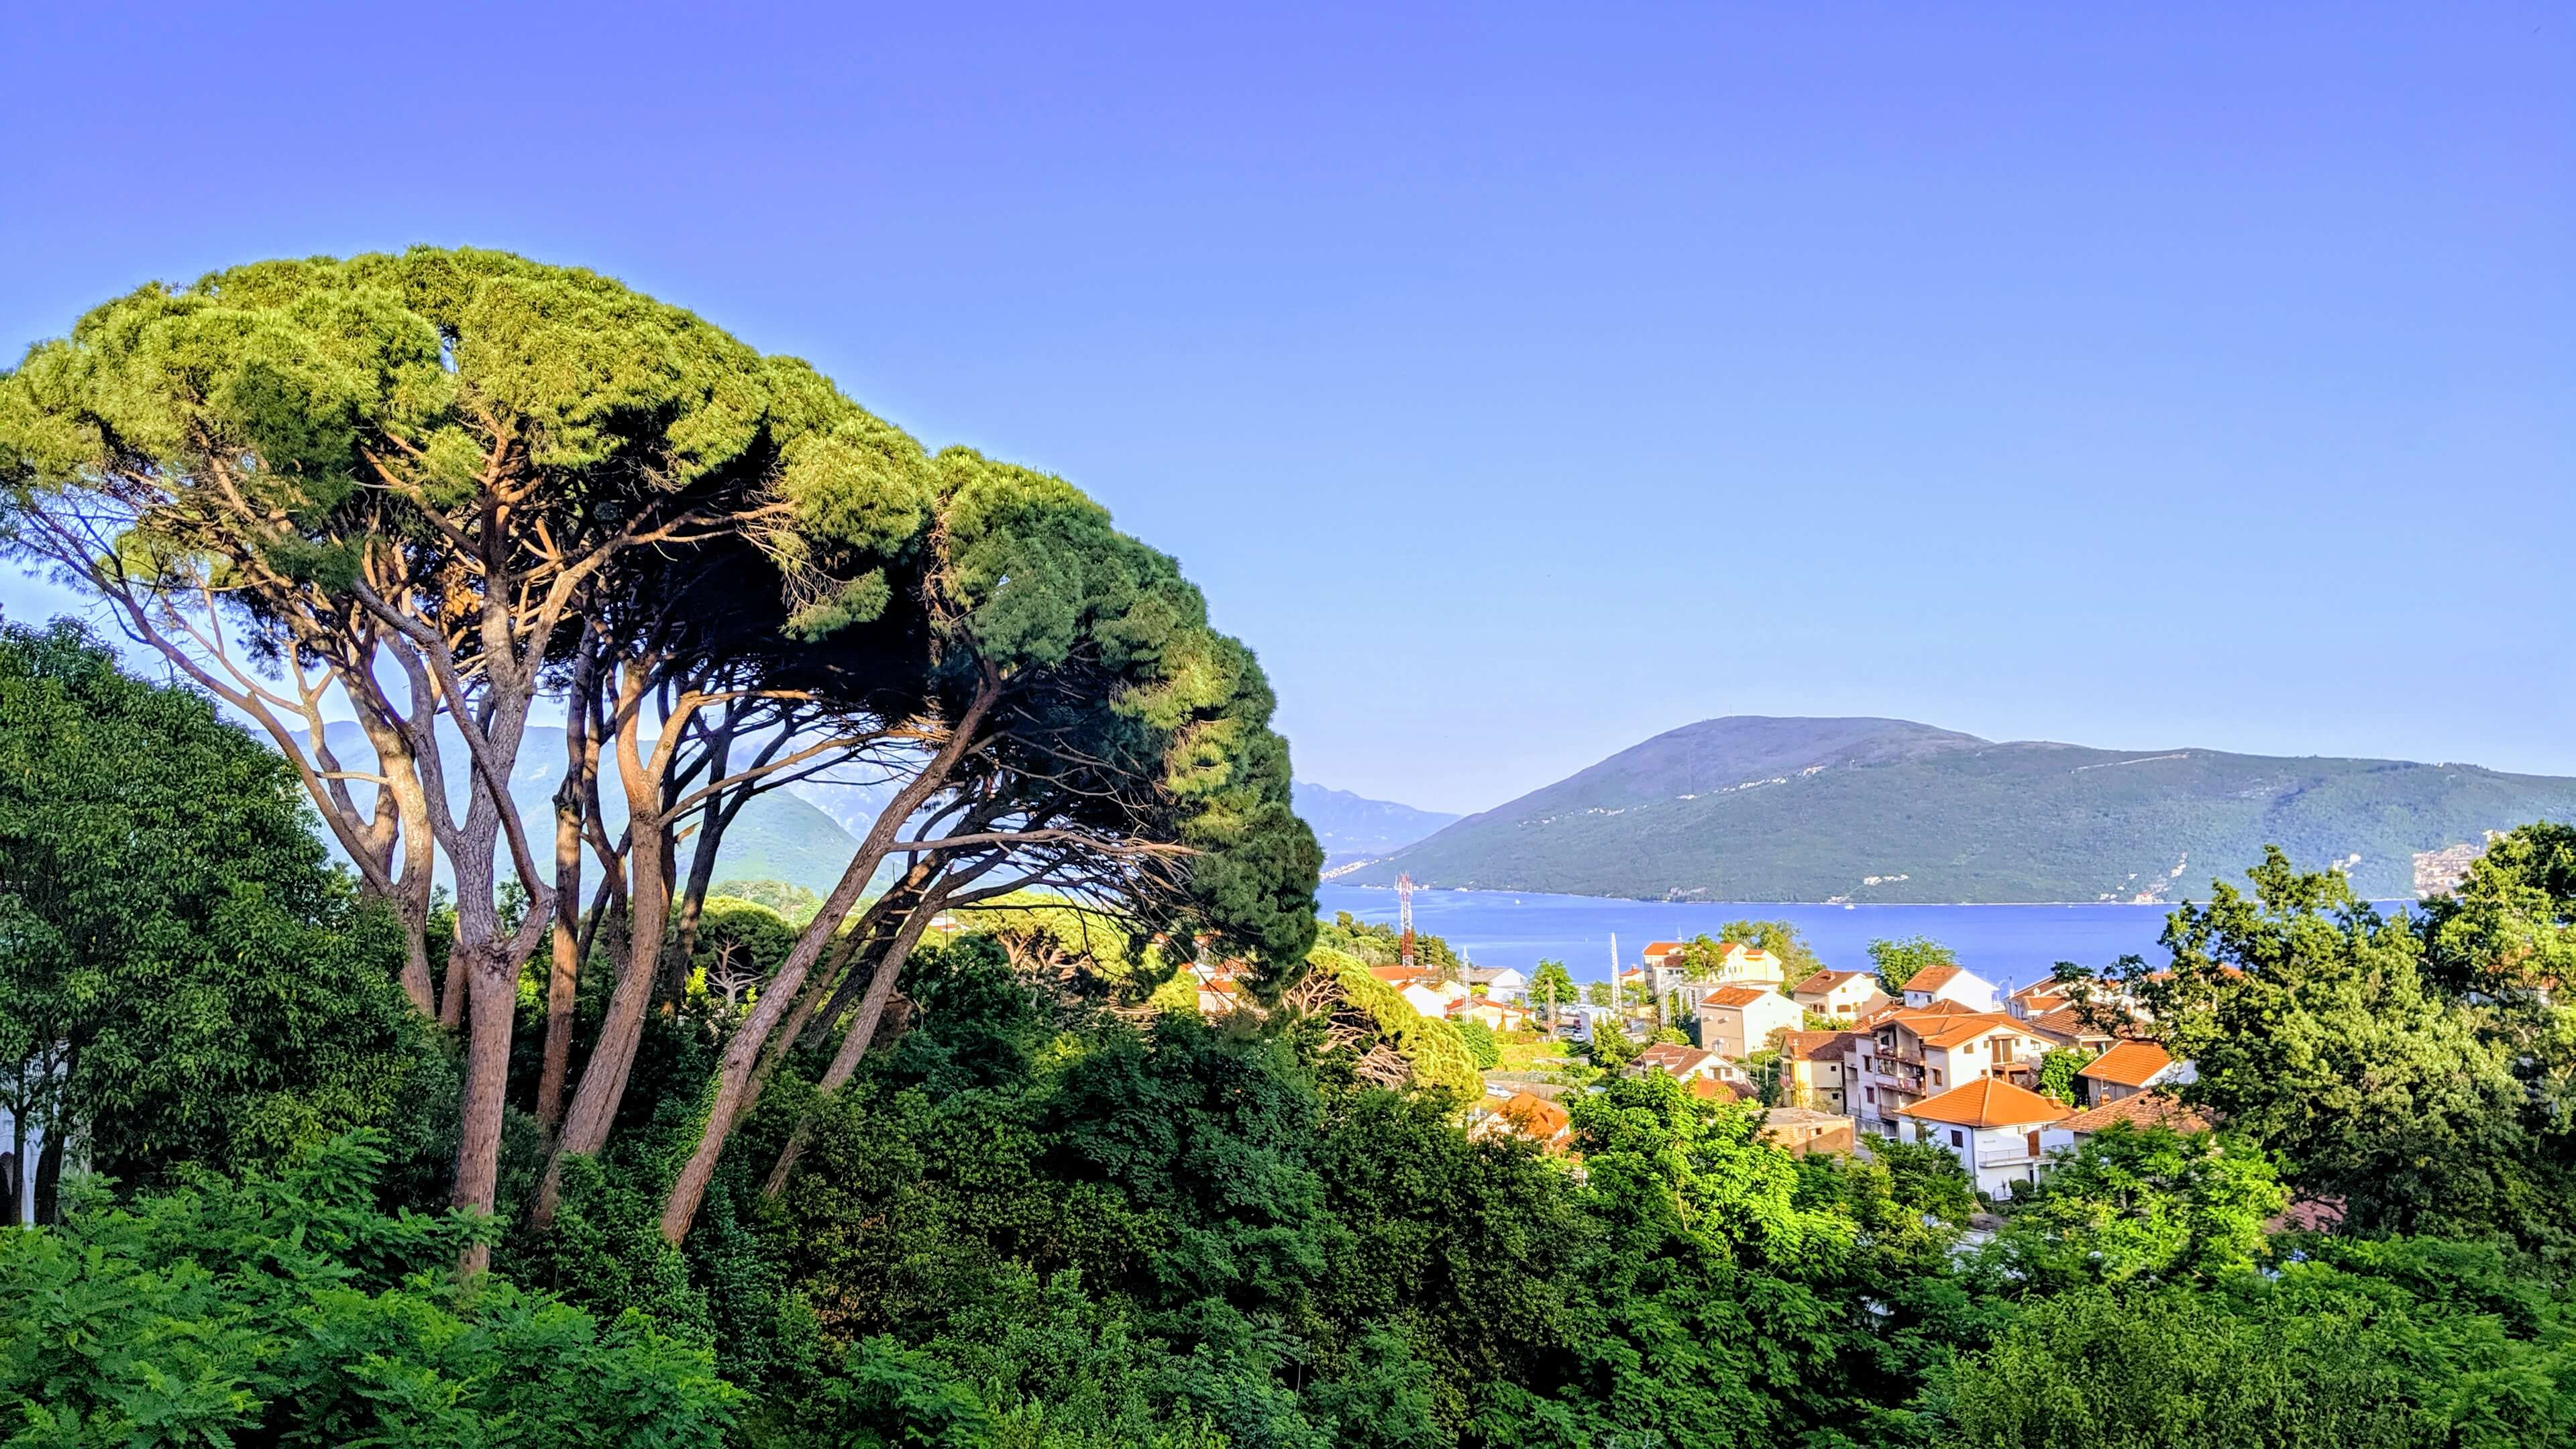 Herceg Novi - the view from our airbnb which shows off the bay and the charming city.